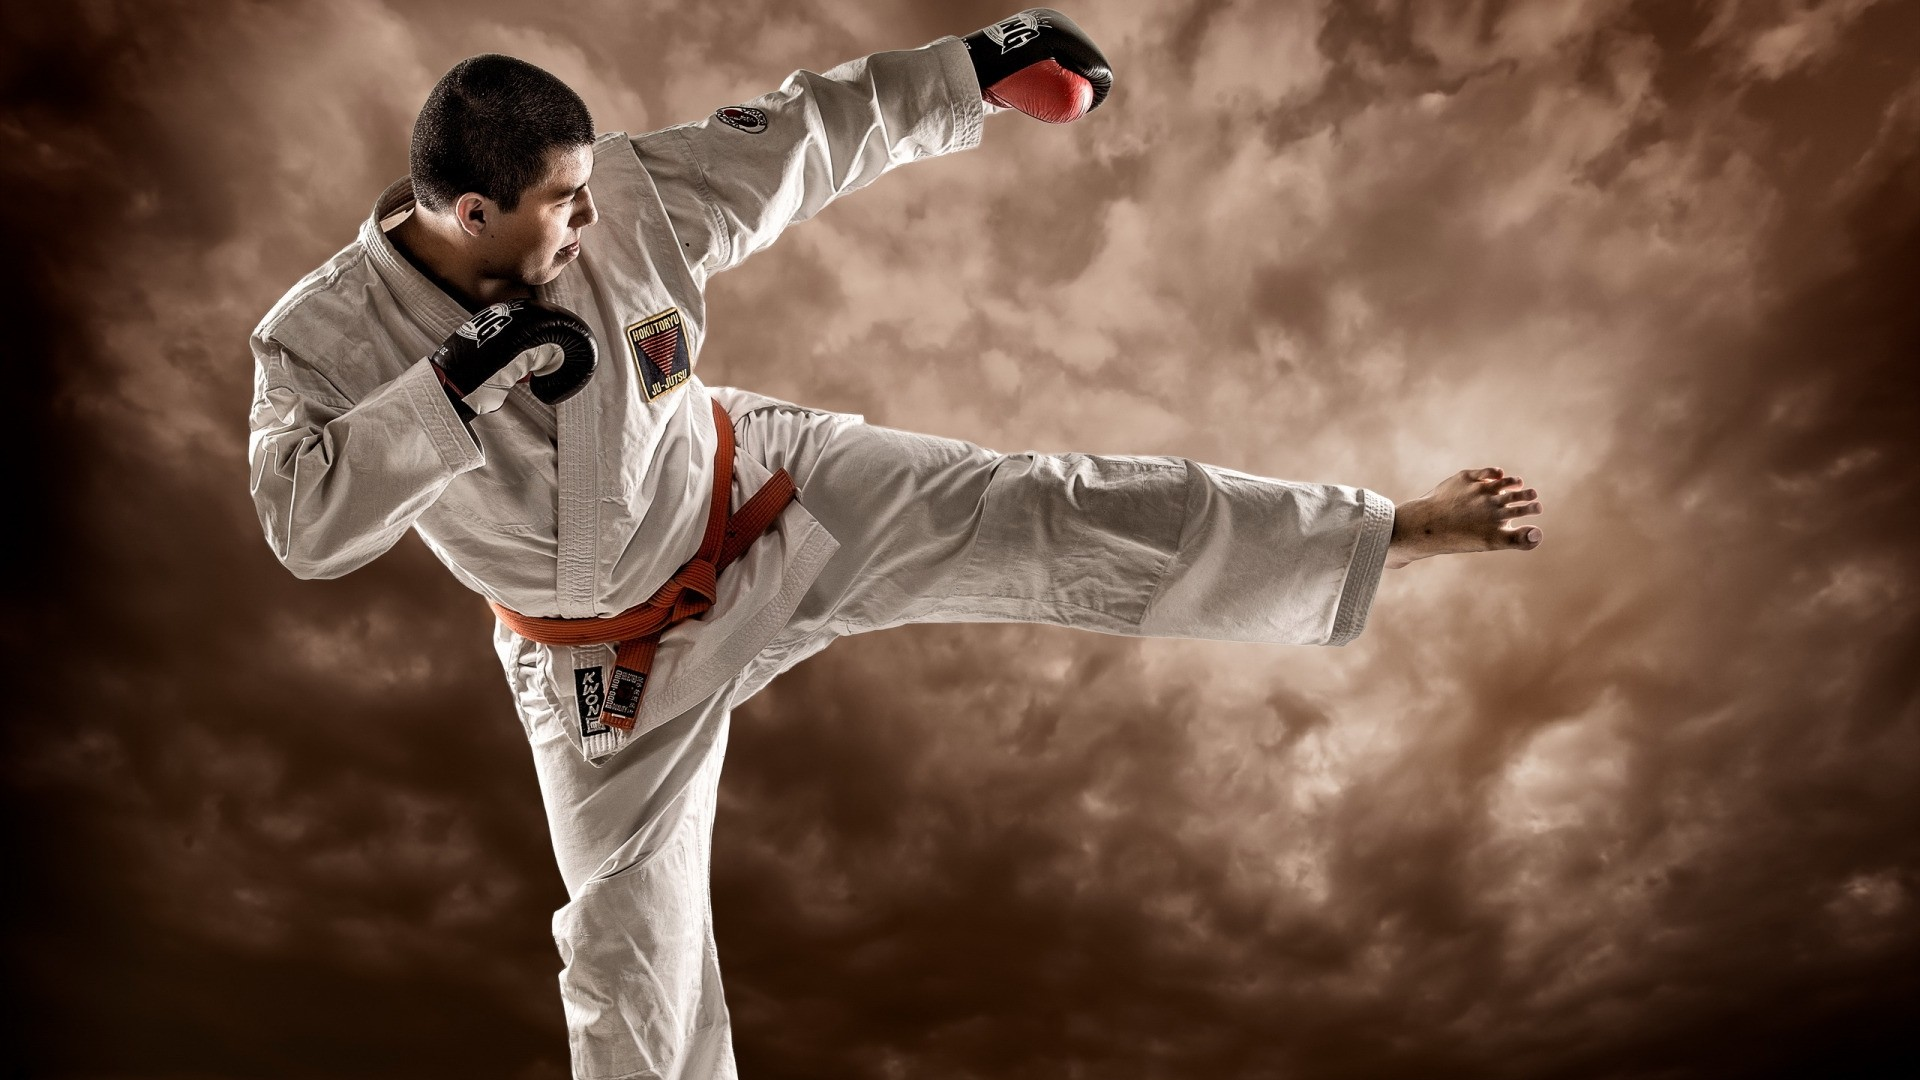 Karate download free wallpaper for pc in hd